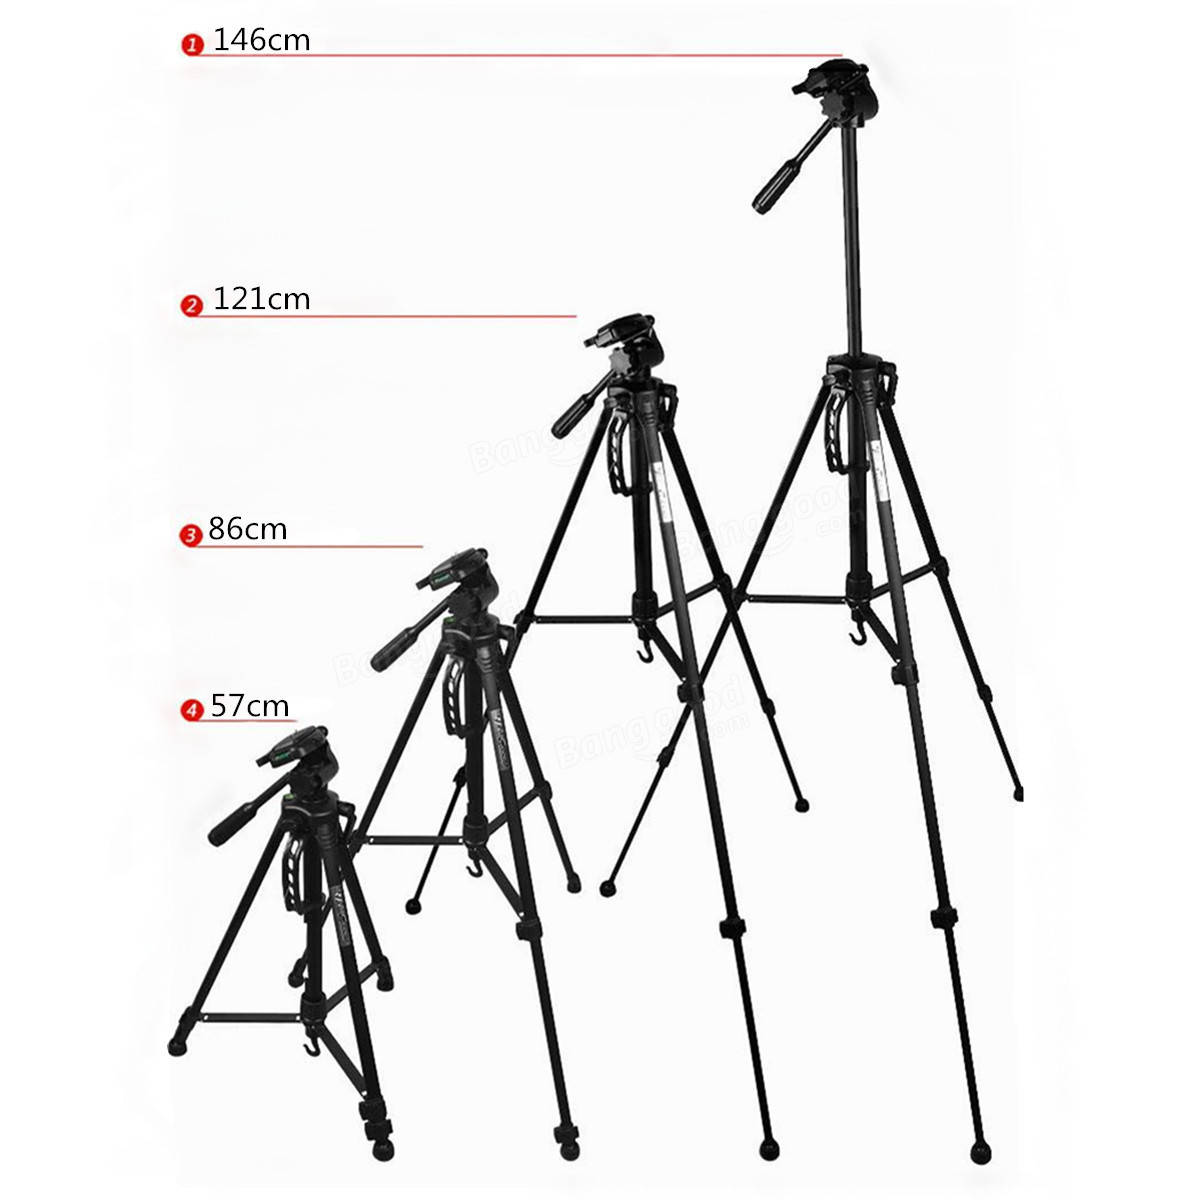 Weifeng Wt Tripod Stand With Carry Case For Digital Camera Dslr Camcorder Sale